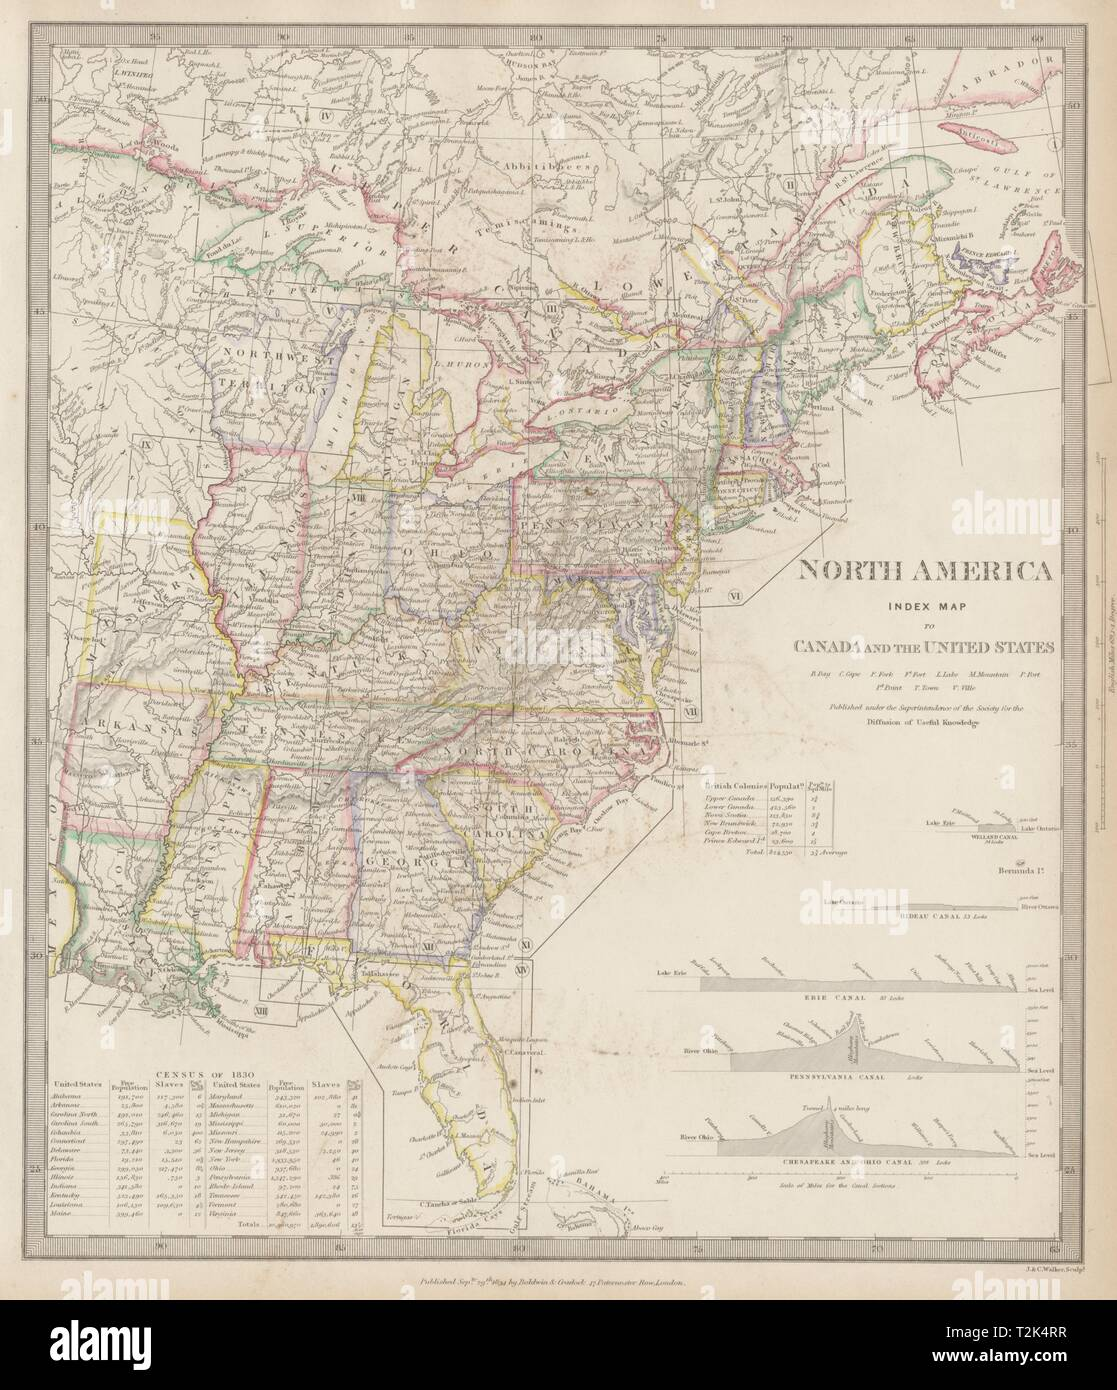 Map Of Eastern Canada And Usa.North America East Canada Usa Canal Profiles 1830 Census Table